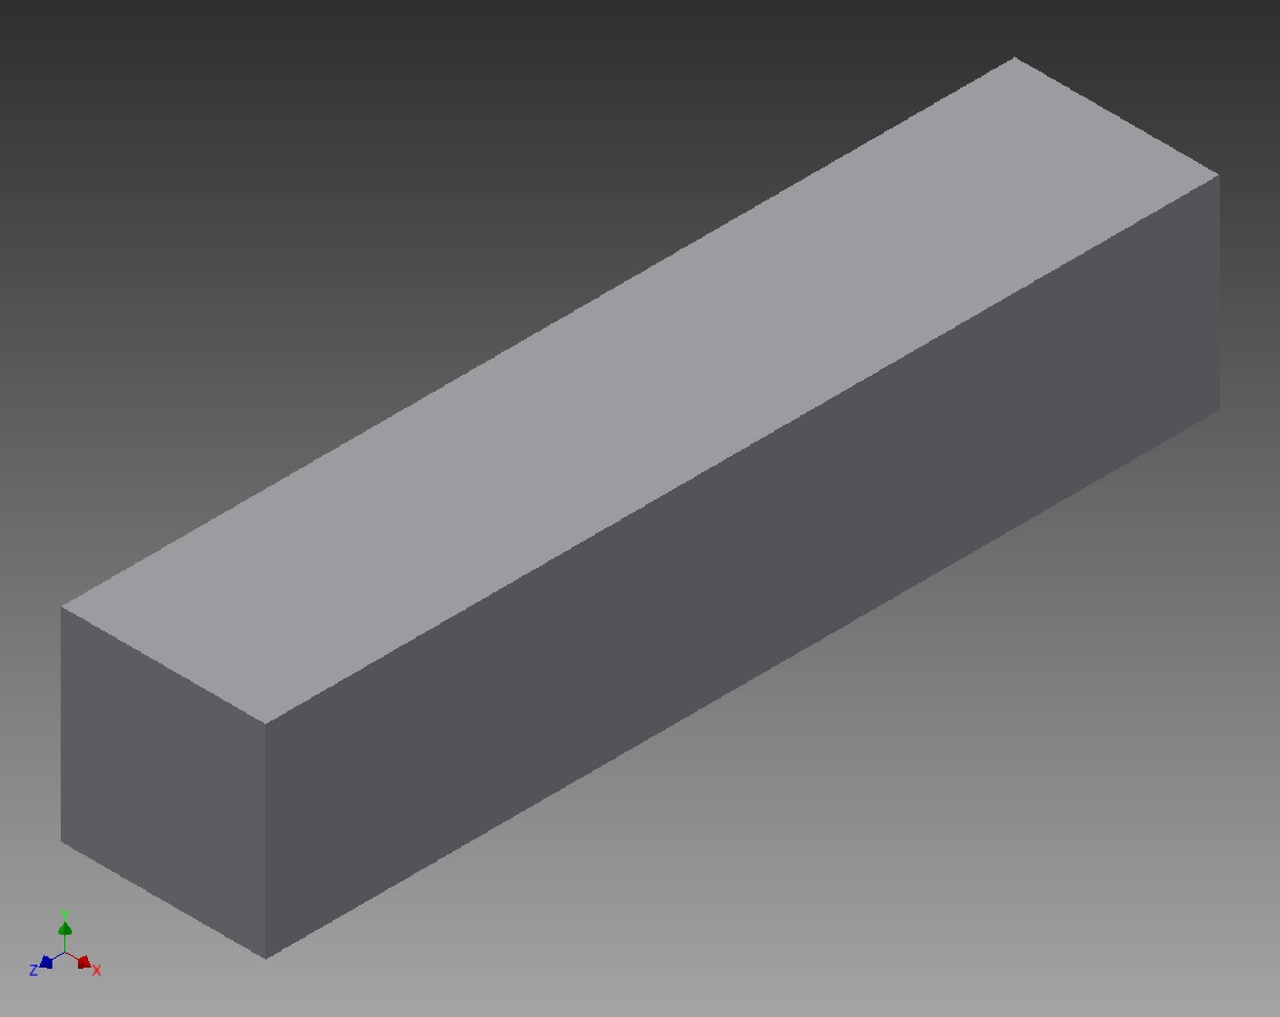 Credit One Application >> File:Rectangular prism.pdf - Wikimedia Commons